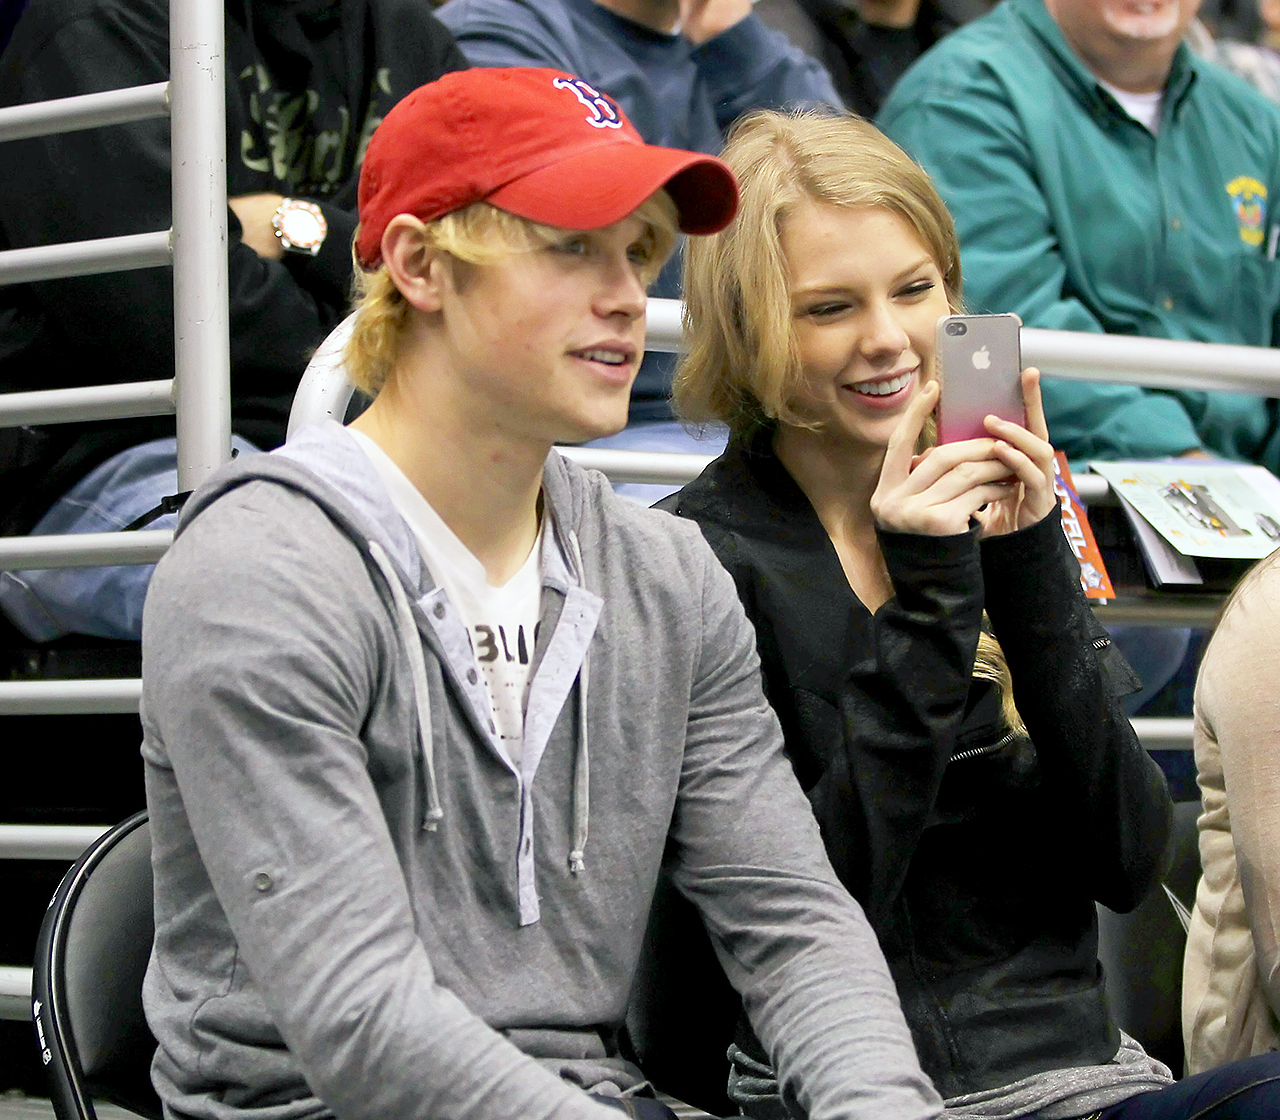 """Swift — who's pals with the Glee star's brother, Hot Chelle Rae's Nash Overstreet — """" reached out to Chord ,"""" an insider told Us . The two hit an L.A. Kings NHL home game in February 2011, where a source added, """"after the event, Taylor and Chord grabbed a bite. He's into her."""""""